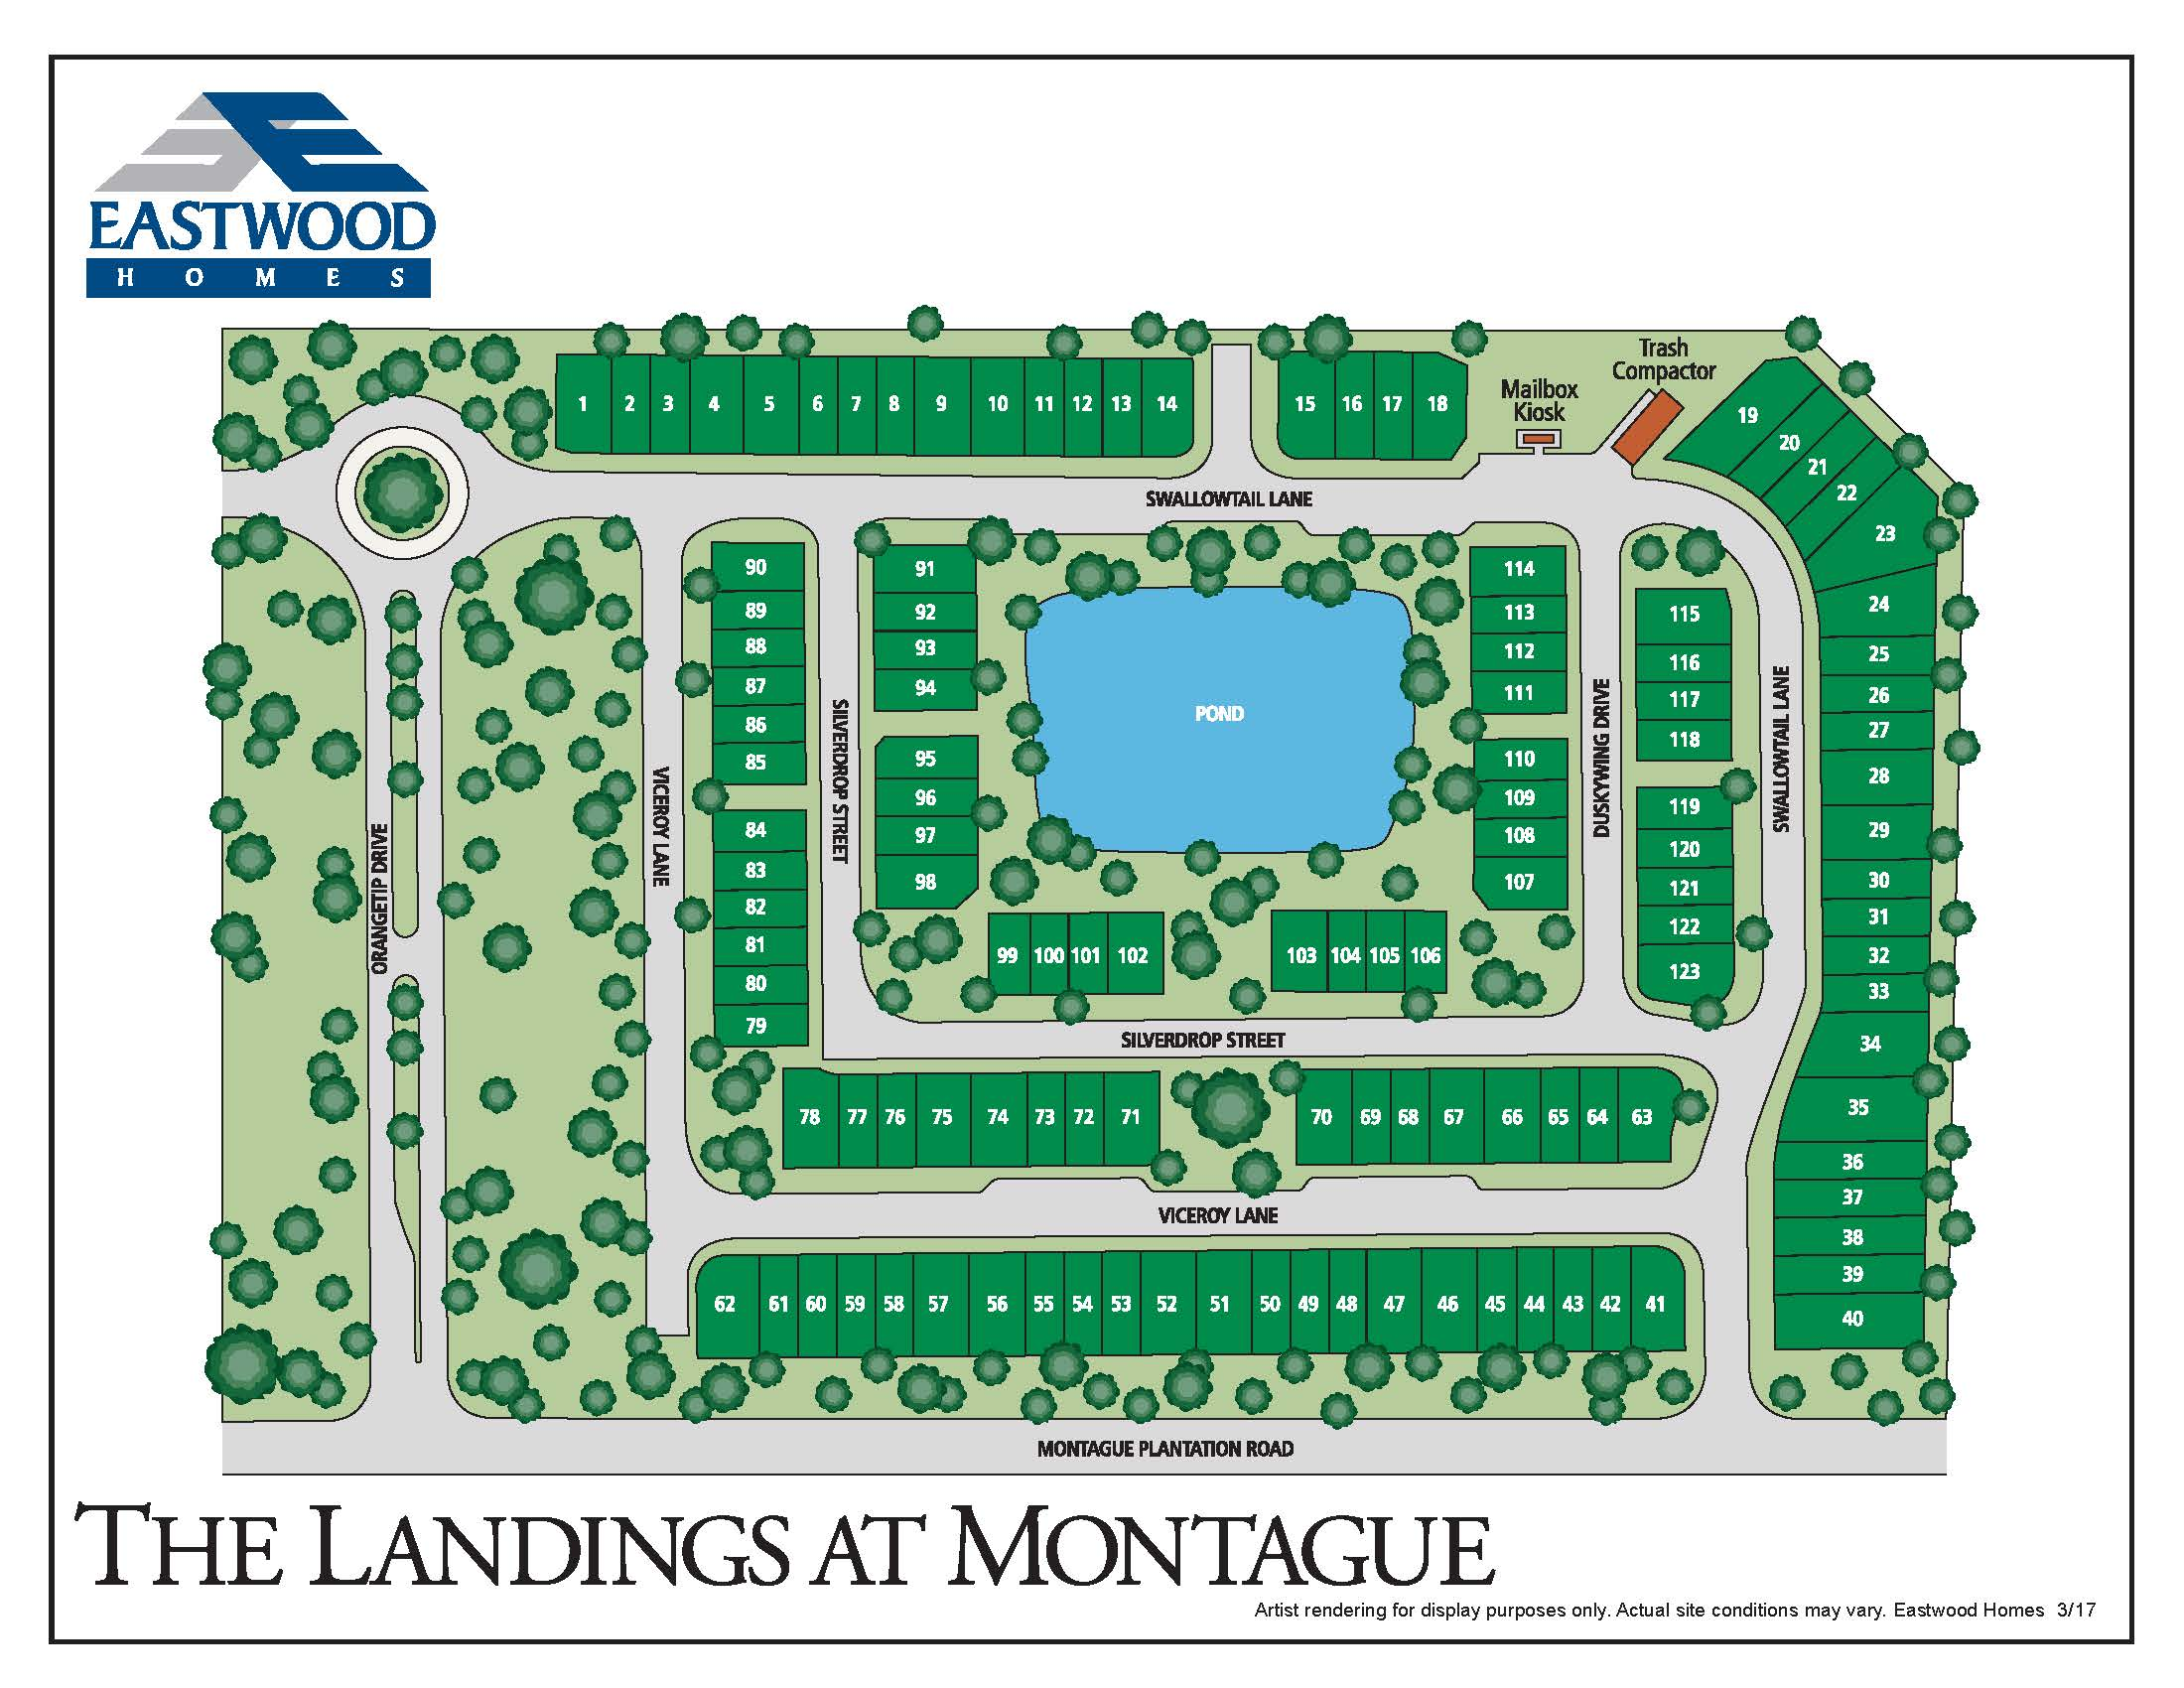 The Landings at Montague